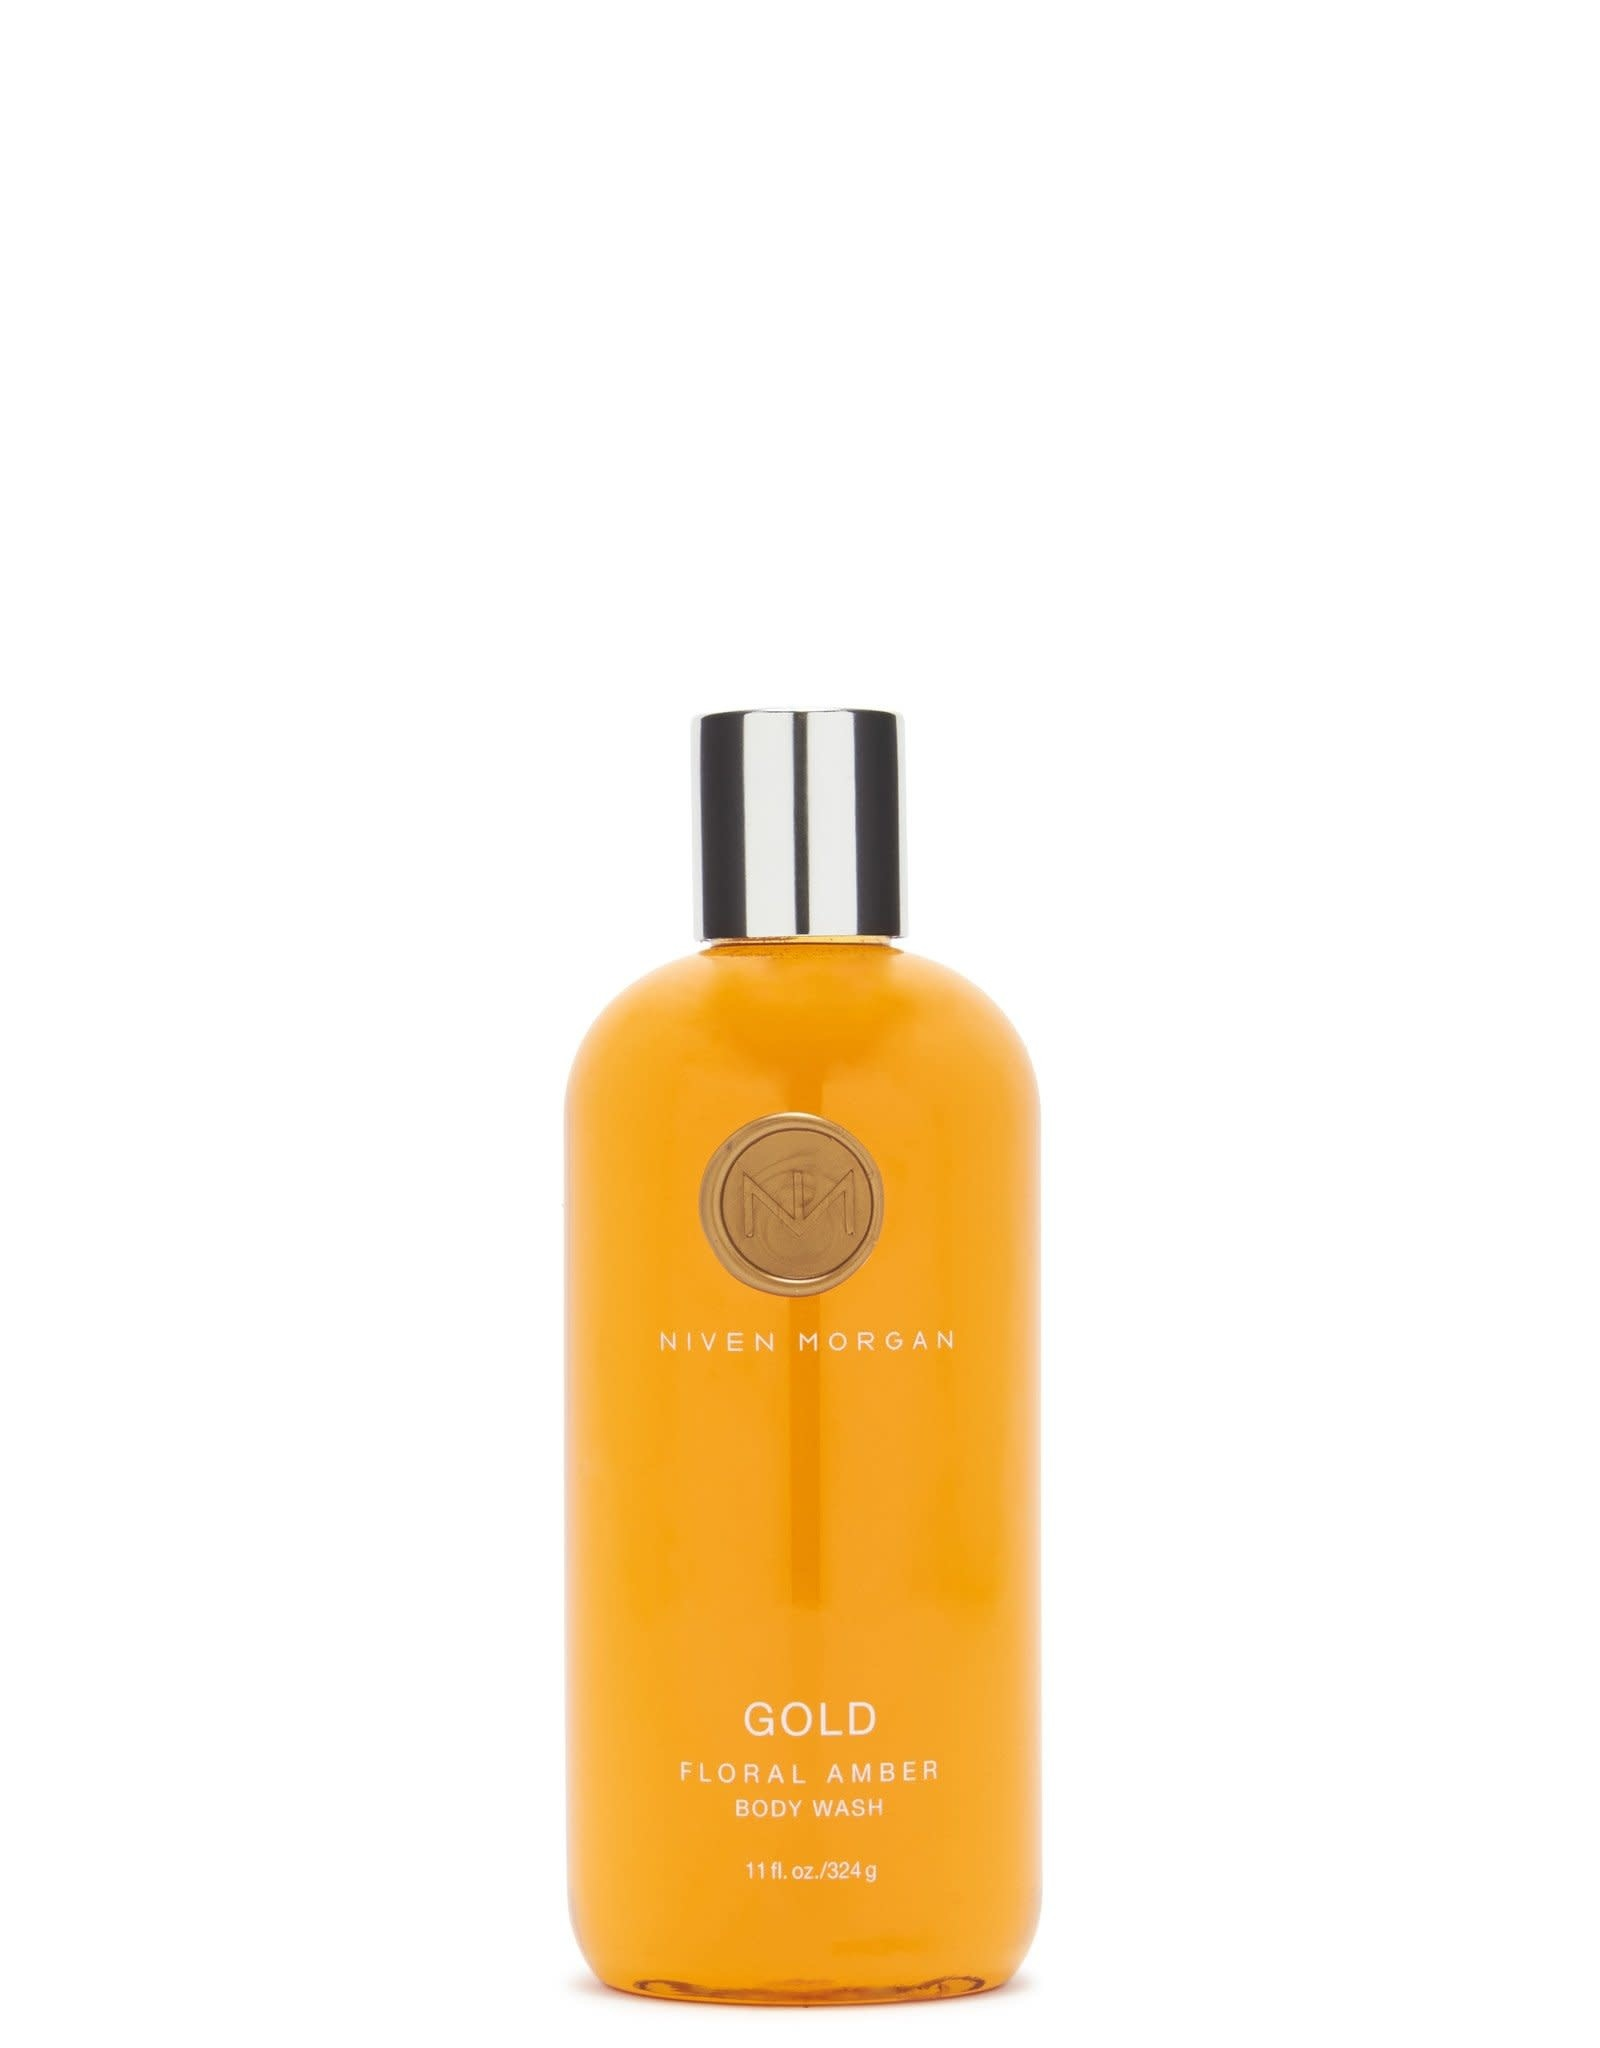 NM Gold Body Wash